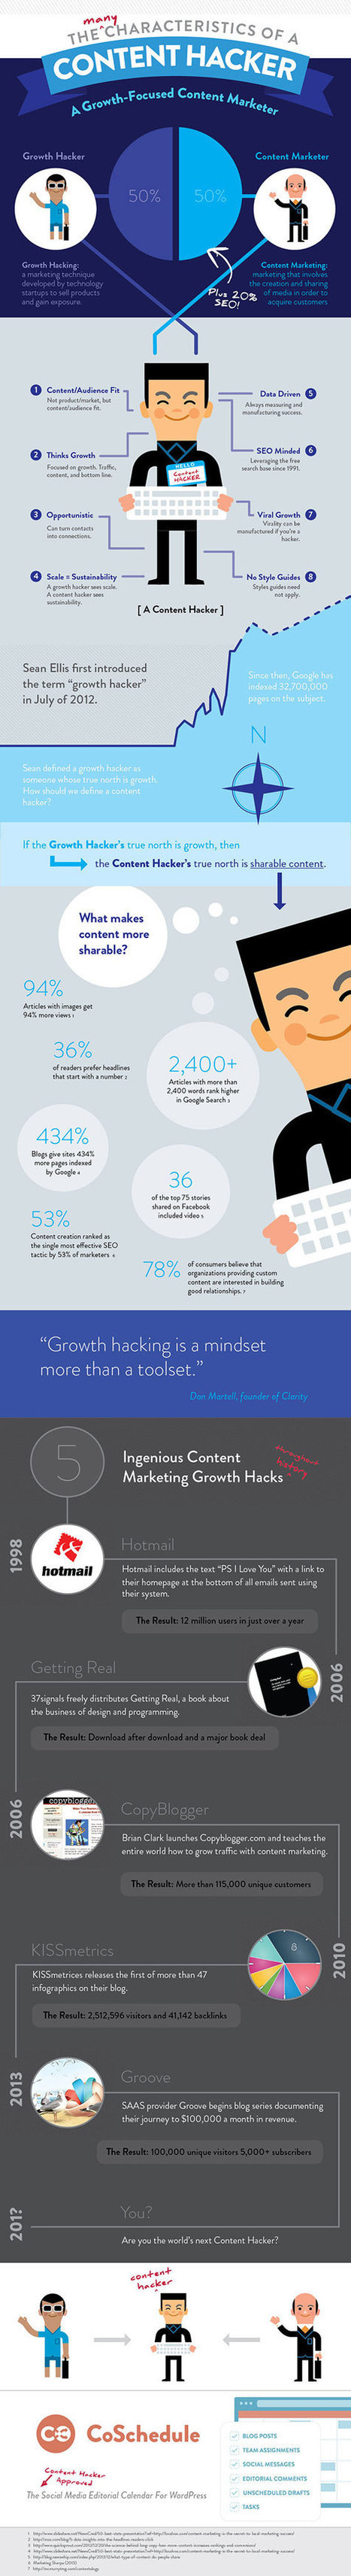 What Is 'Content Hacking' and How Can You Use It to Grow Your Company? [INFOGRAPHIC] | Infographic news | Scoop.it